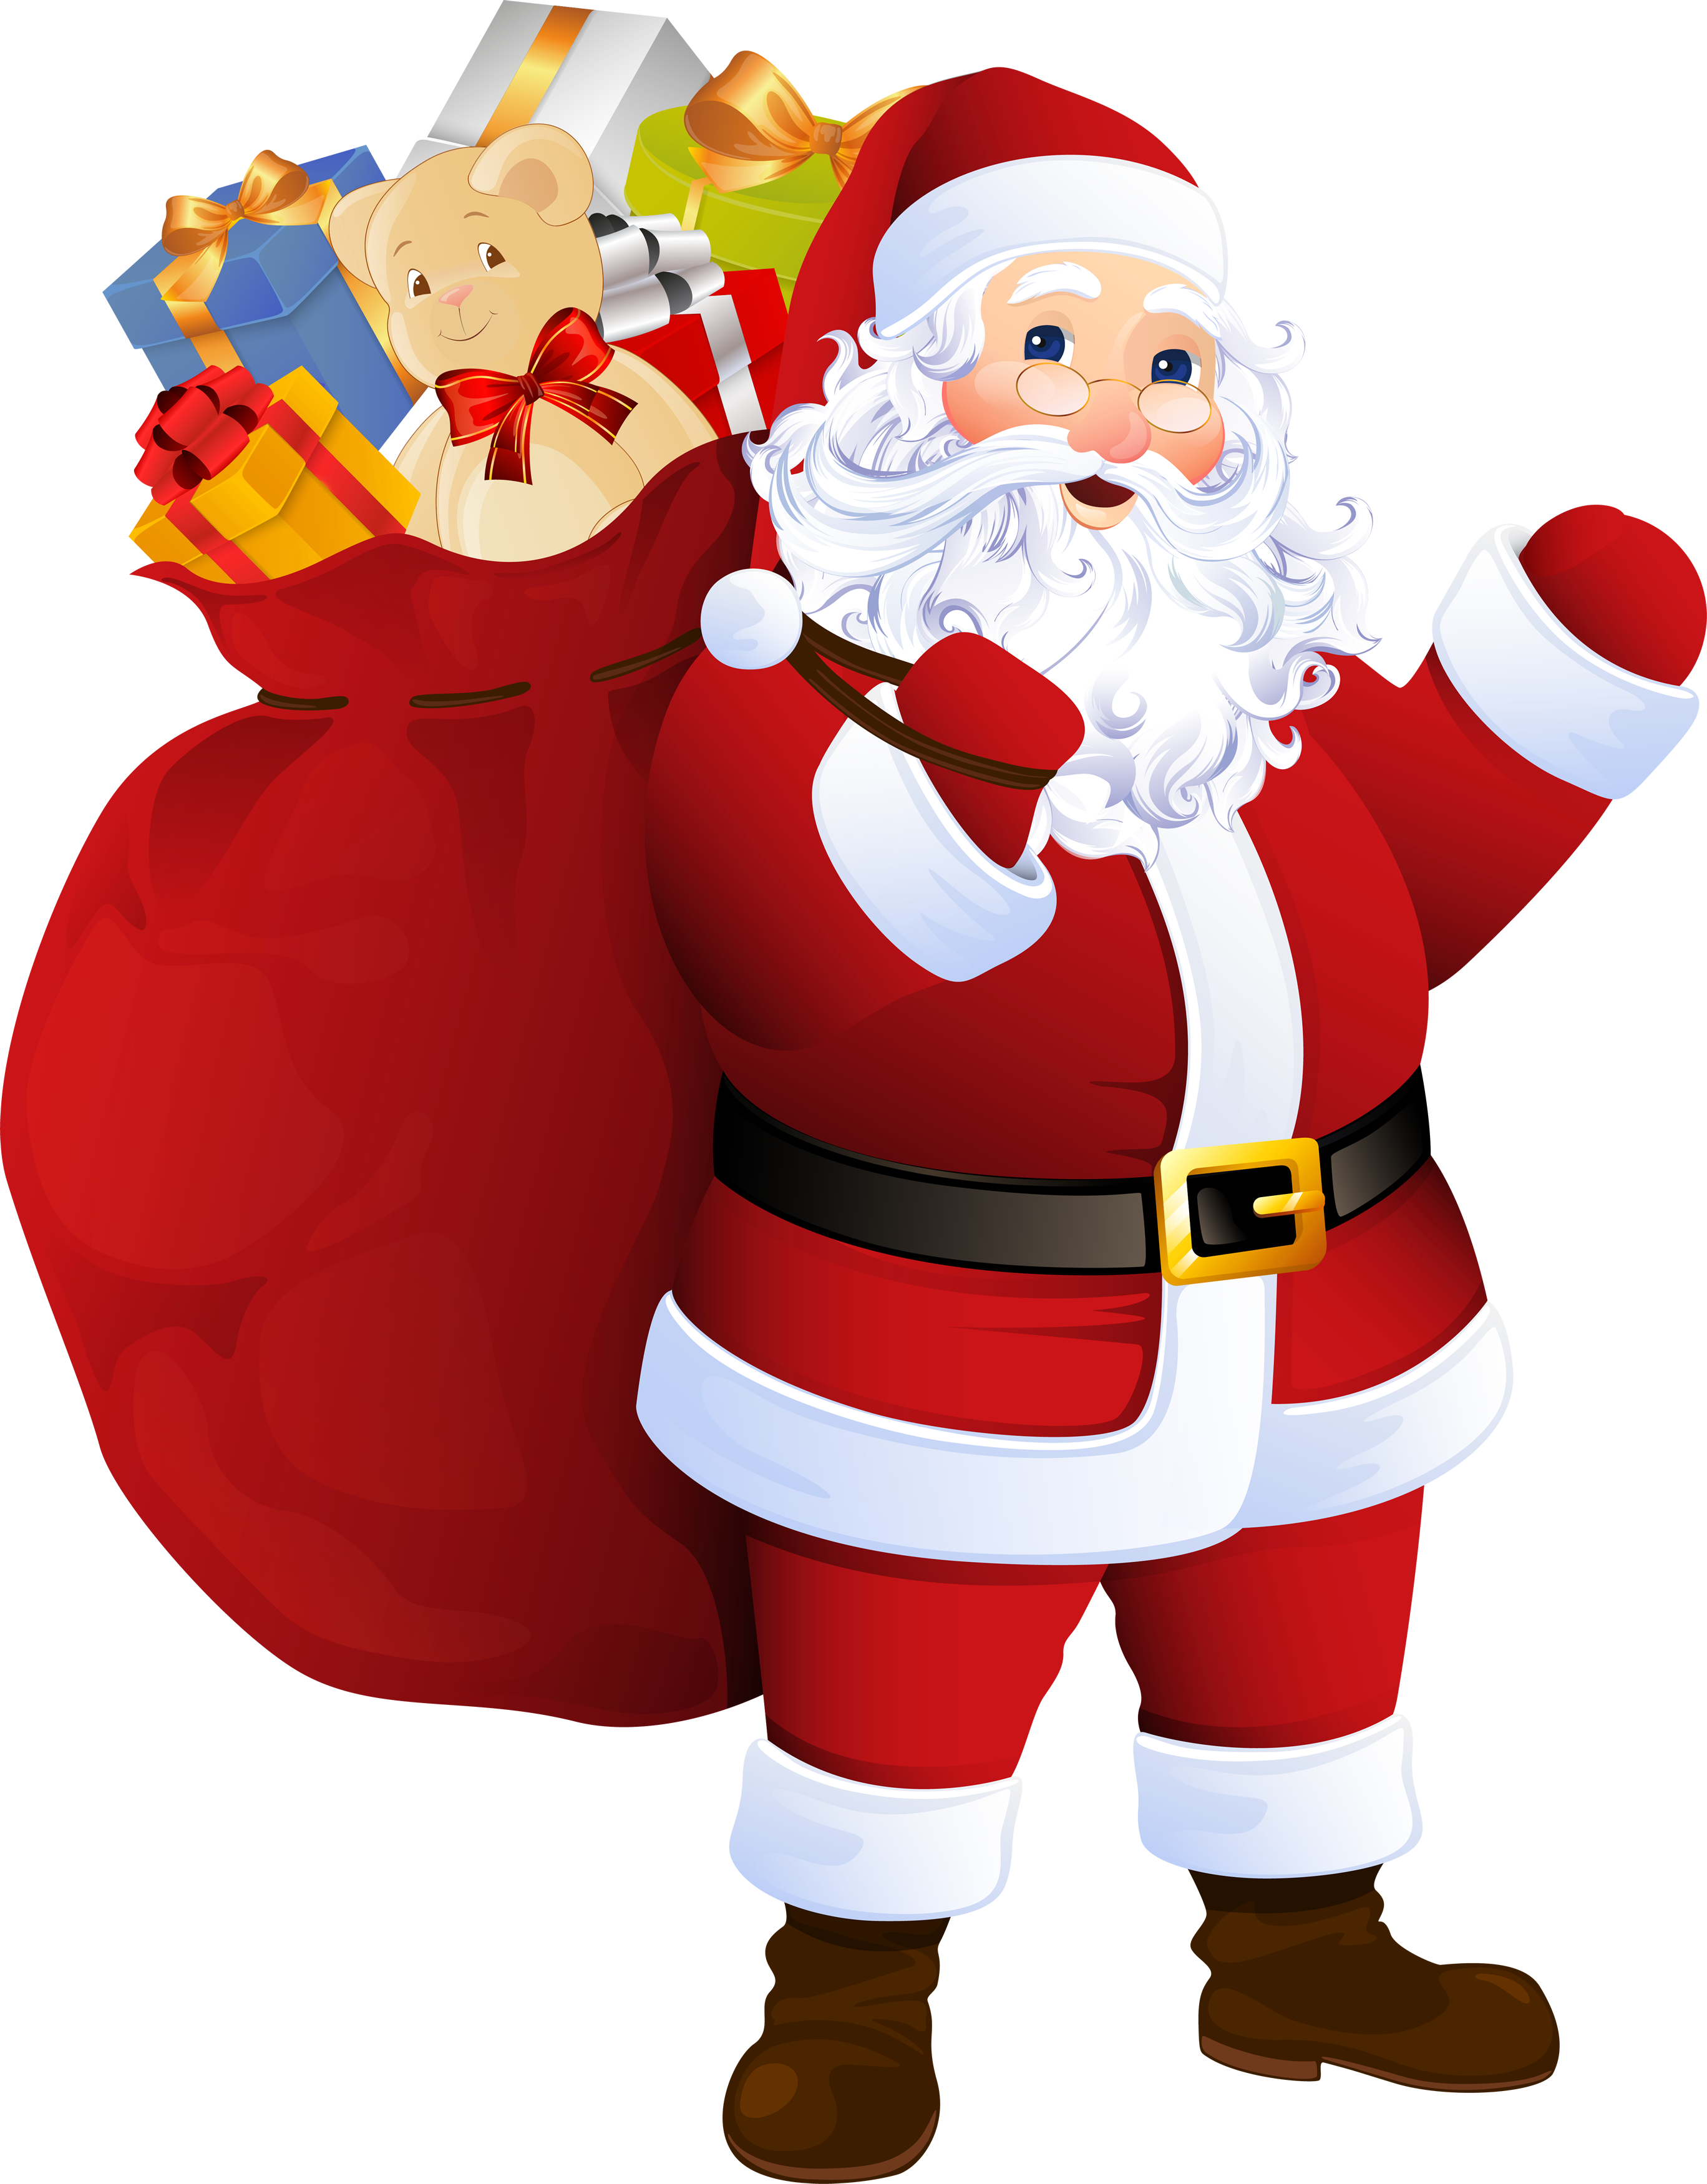 Father christmas claus png. Sunglasses clipart santa